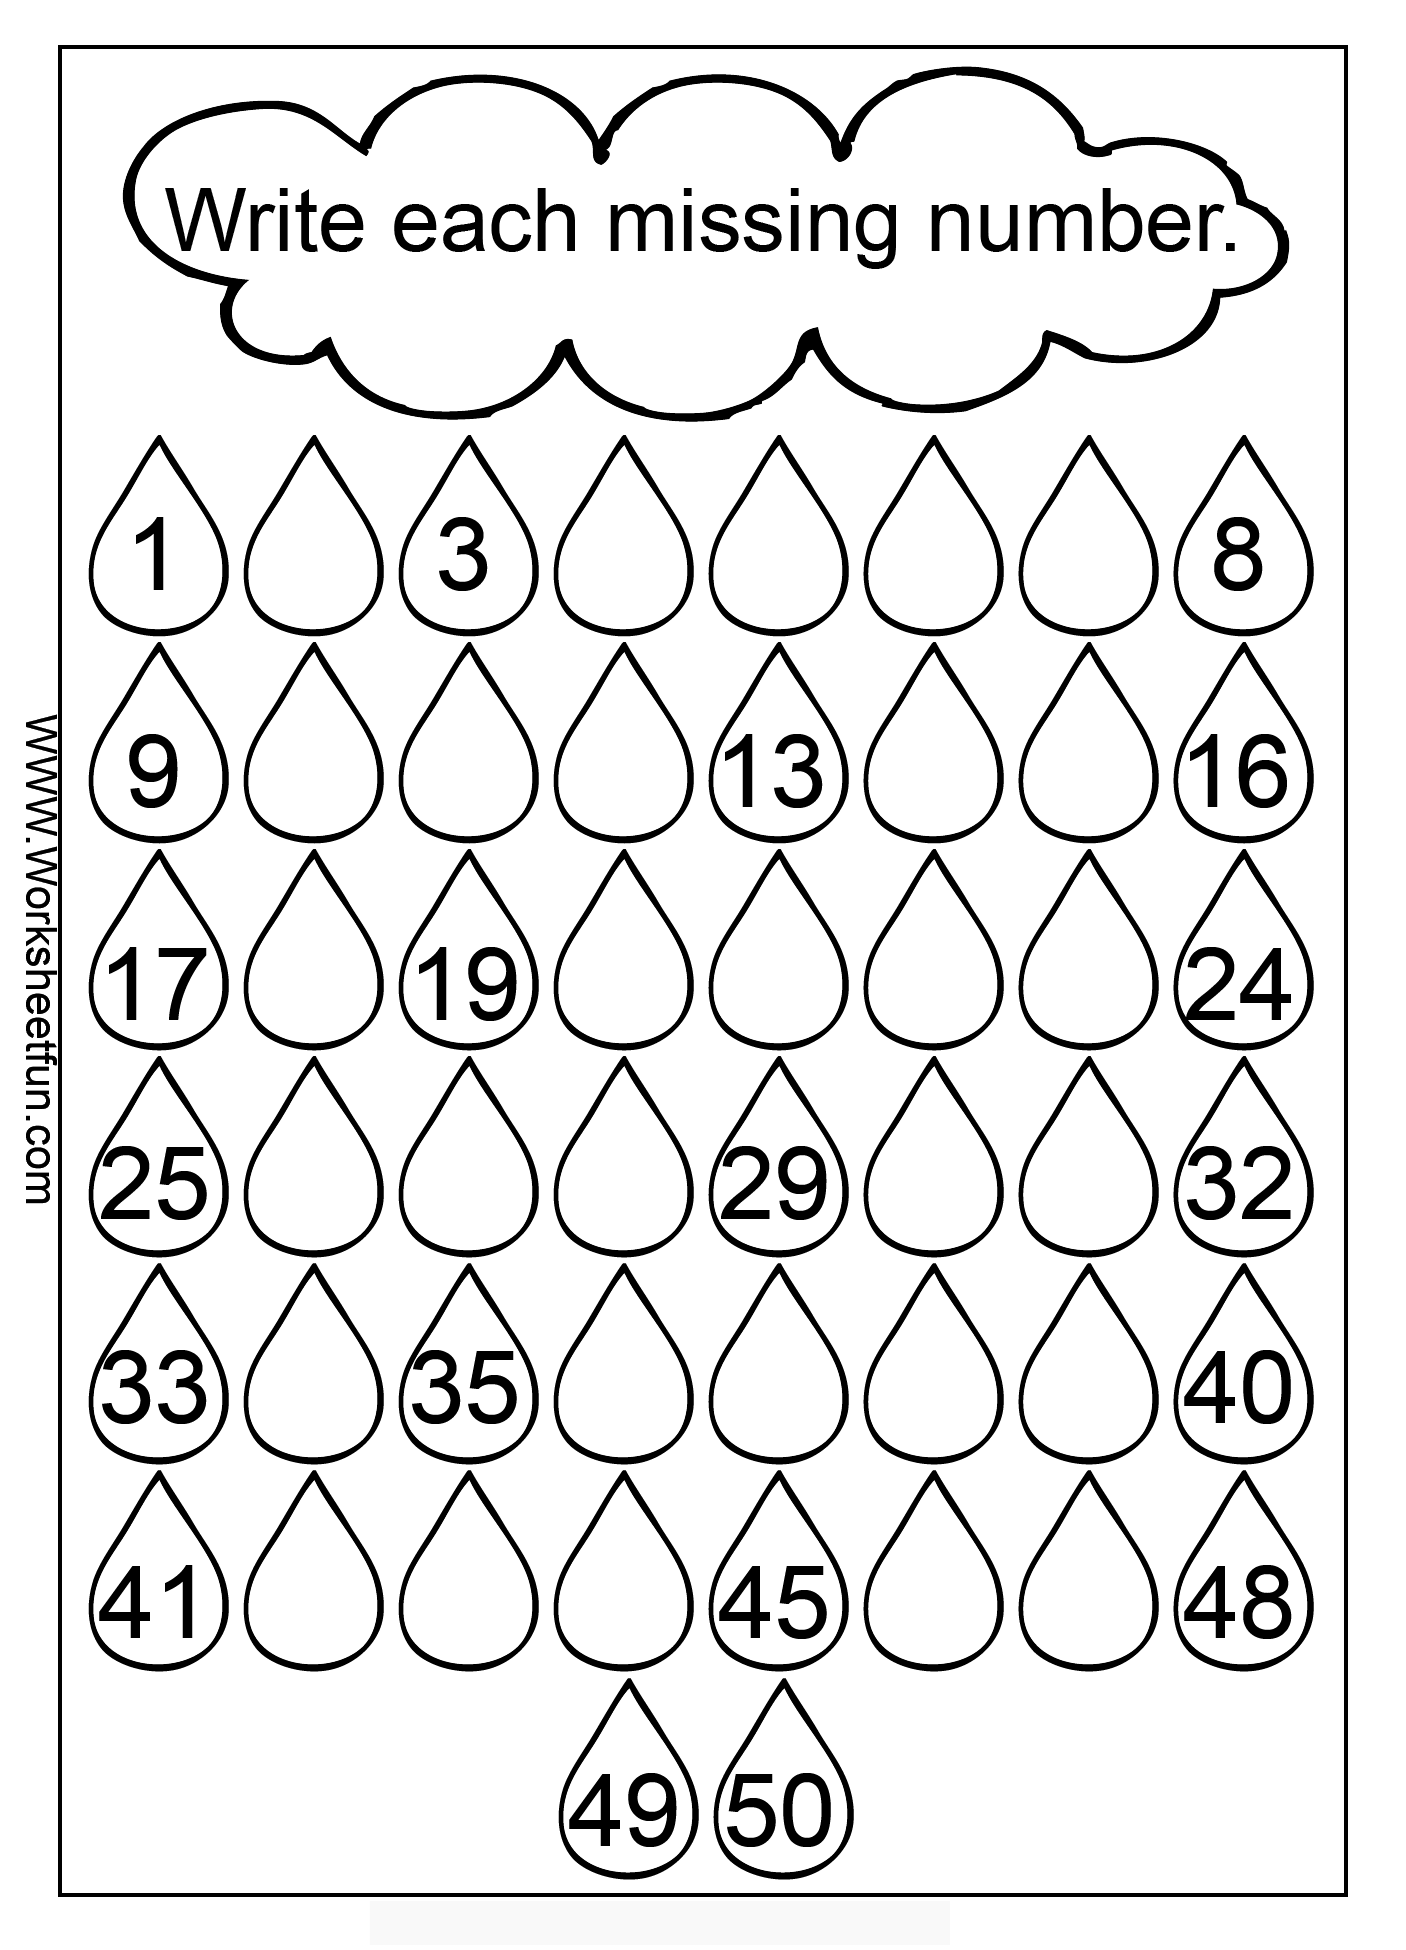 worksheet Math Activities For Kindergarten measurement activities anchor charts and my kids are going to hate me i just want them be smart missing numbers 3 worksheets sight has lots of good math workshee